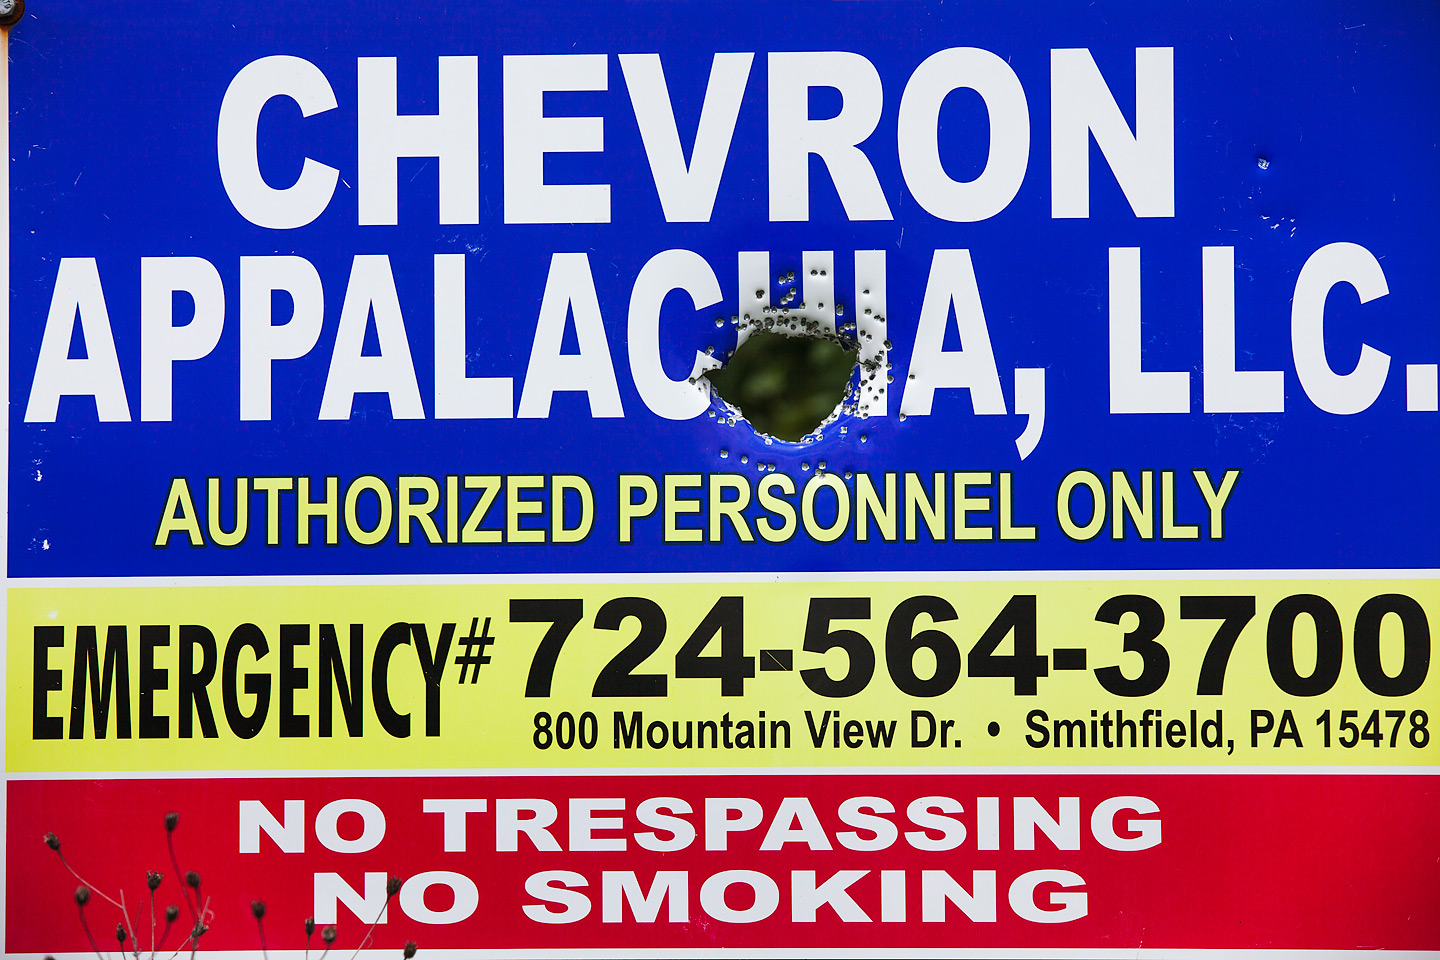 Shot up signage belonging to Chevron Appalachia in Snow Show Township in Centre County, Pennsylvania.